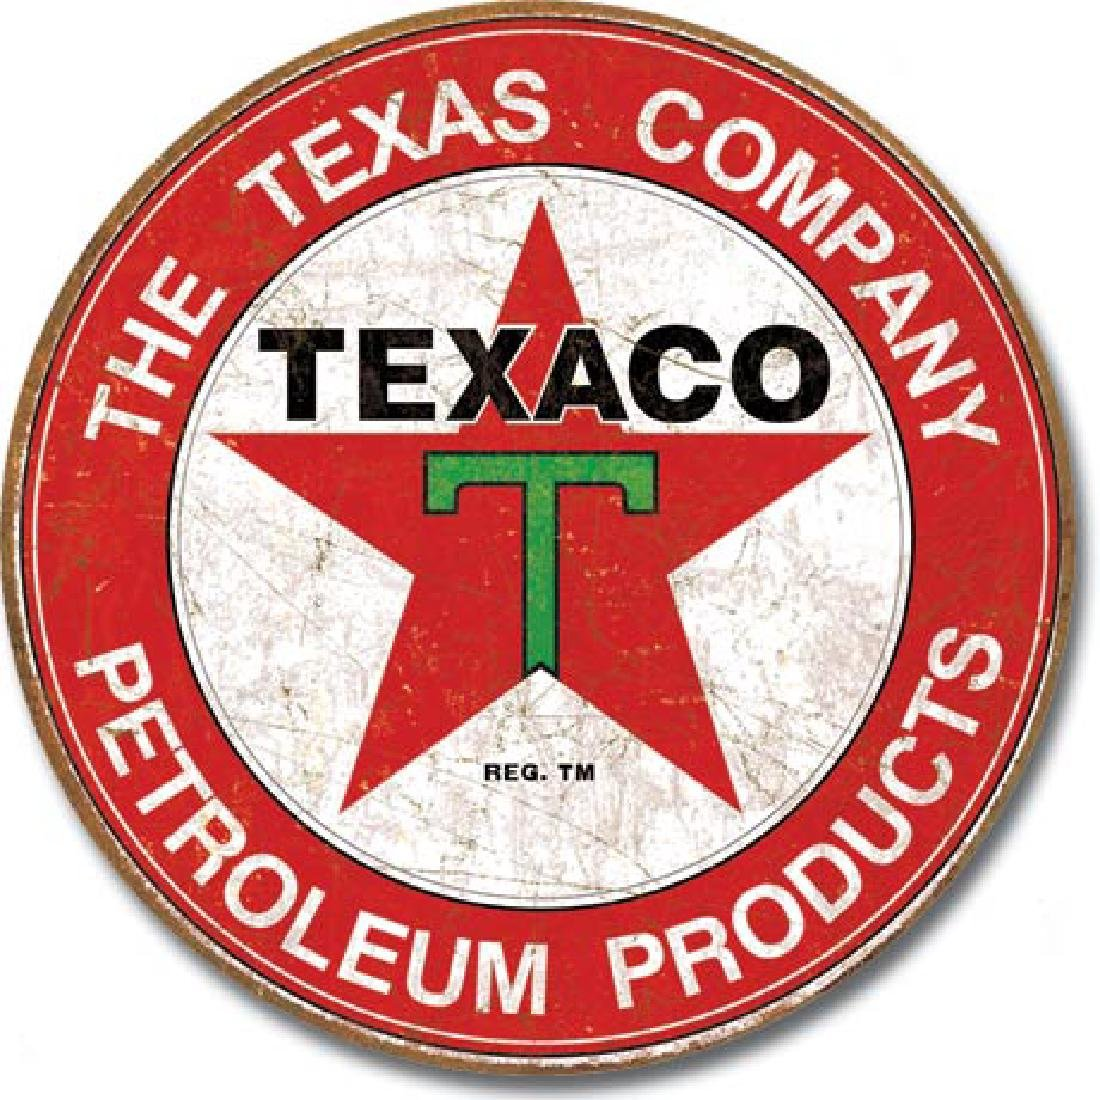 "TEXACO METAL SIGN 12"" ROUND"